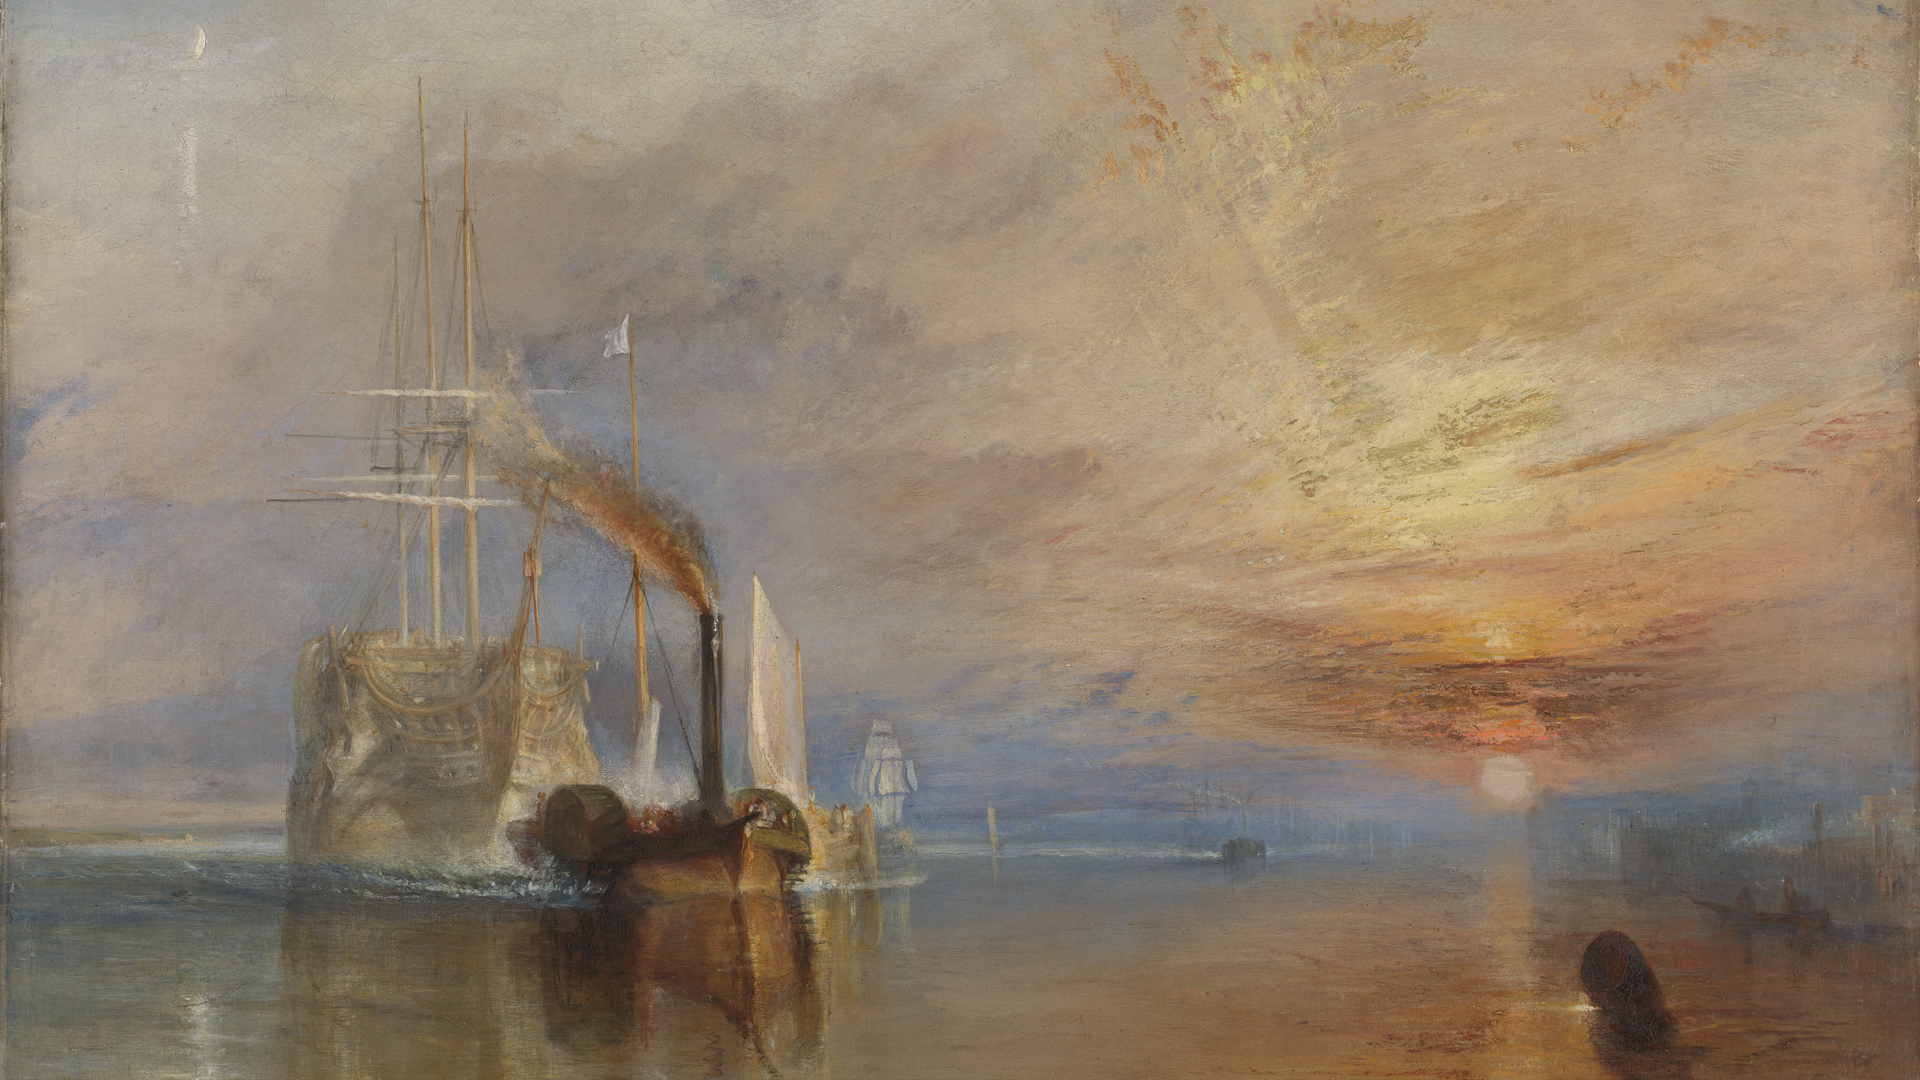 NG0524 - Joseph Mallord William Turner. The Fighting Temeraire. 1839. © The National Gallery, London